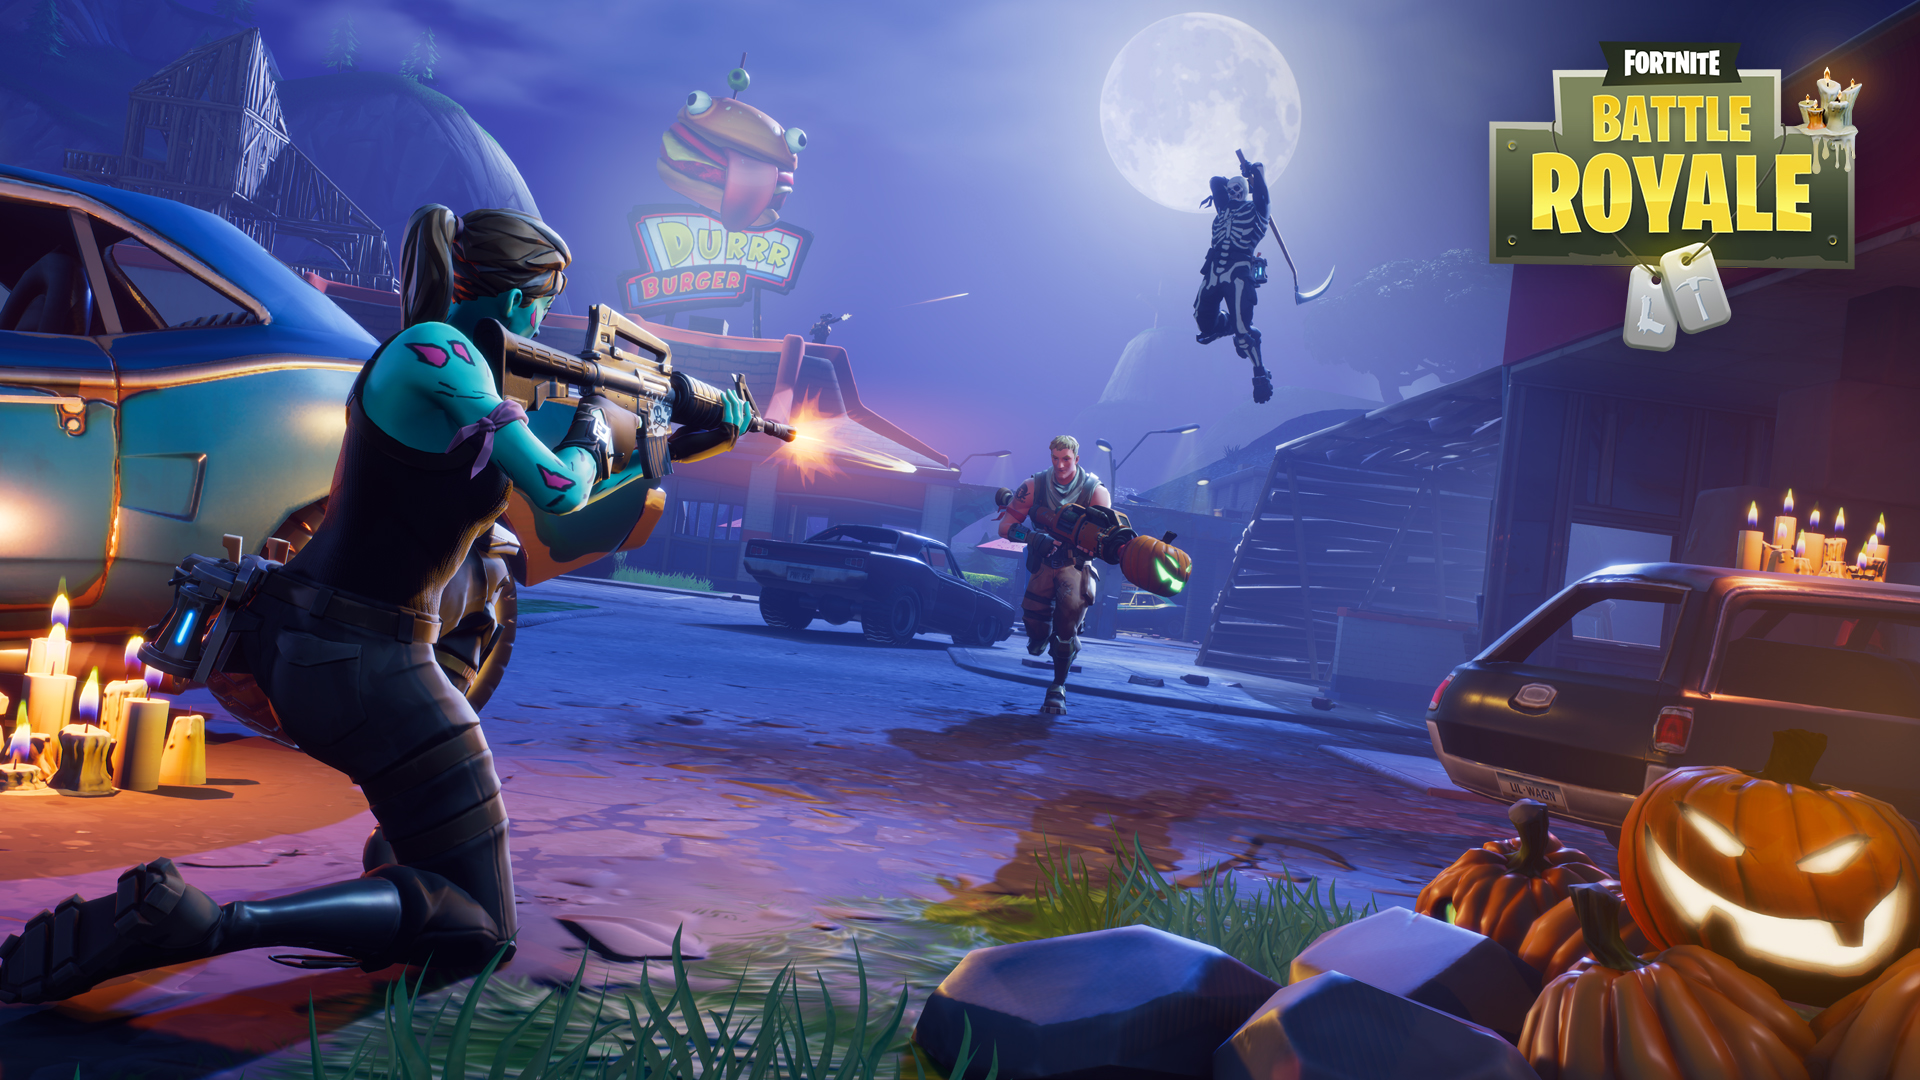 Fortnite Battle Royale Game Wallpaper 62258 1920x1080 px 1920x1080